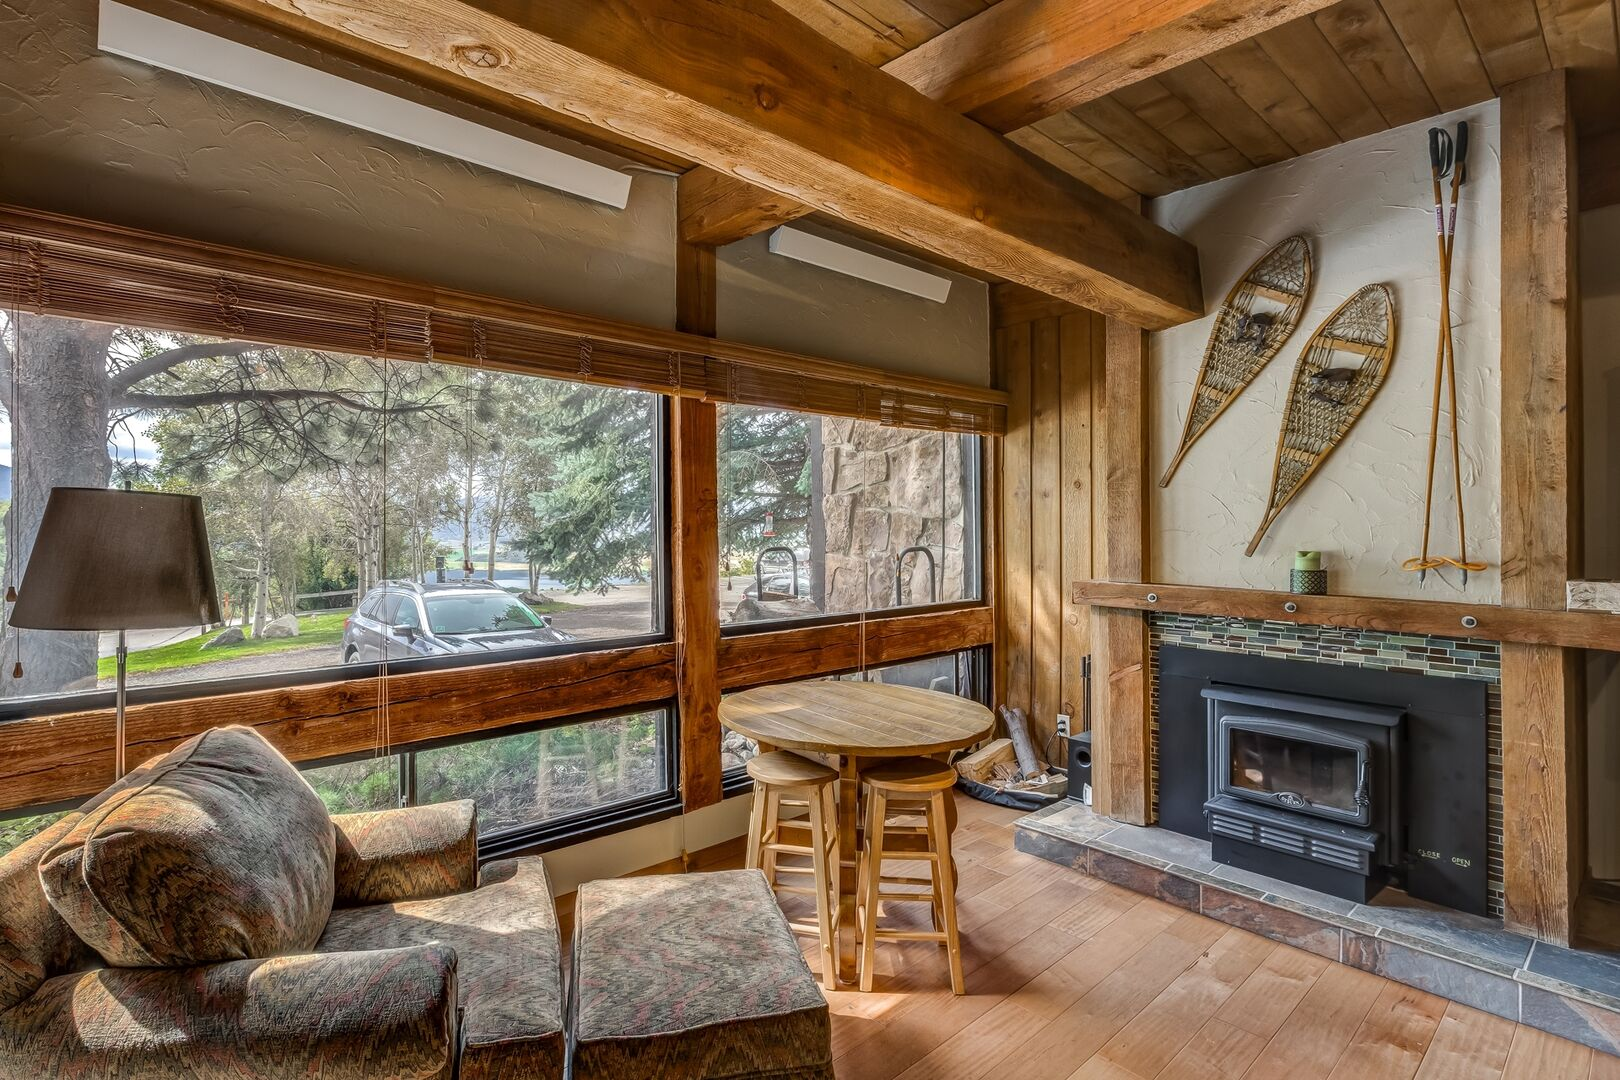 Great views next to the wood burning fireplace